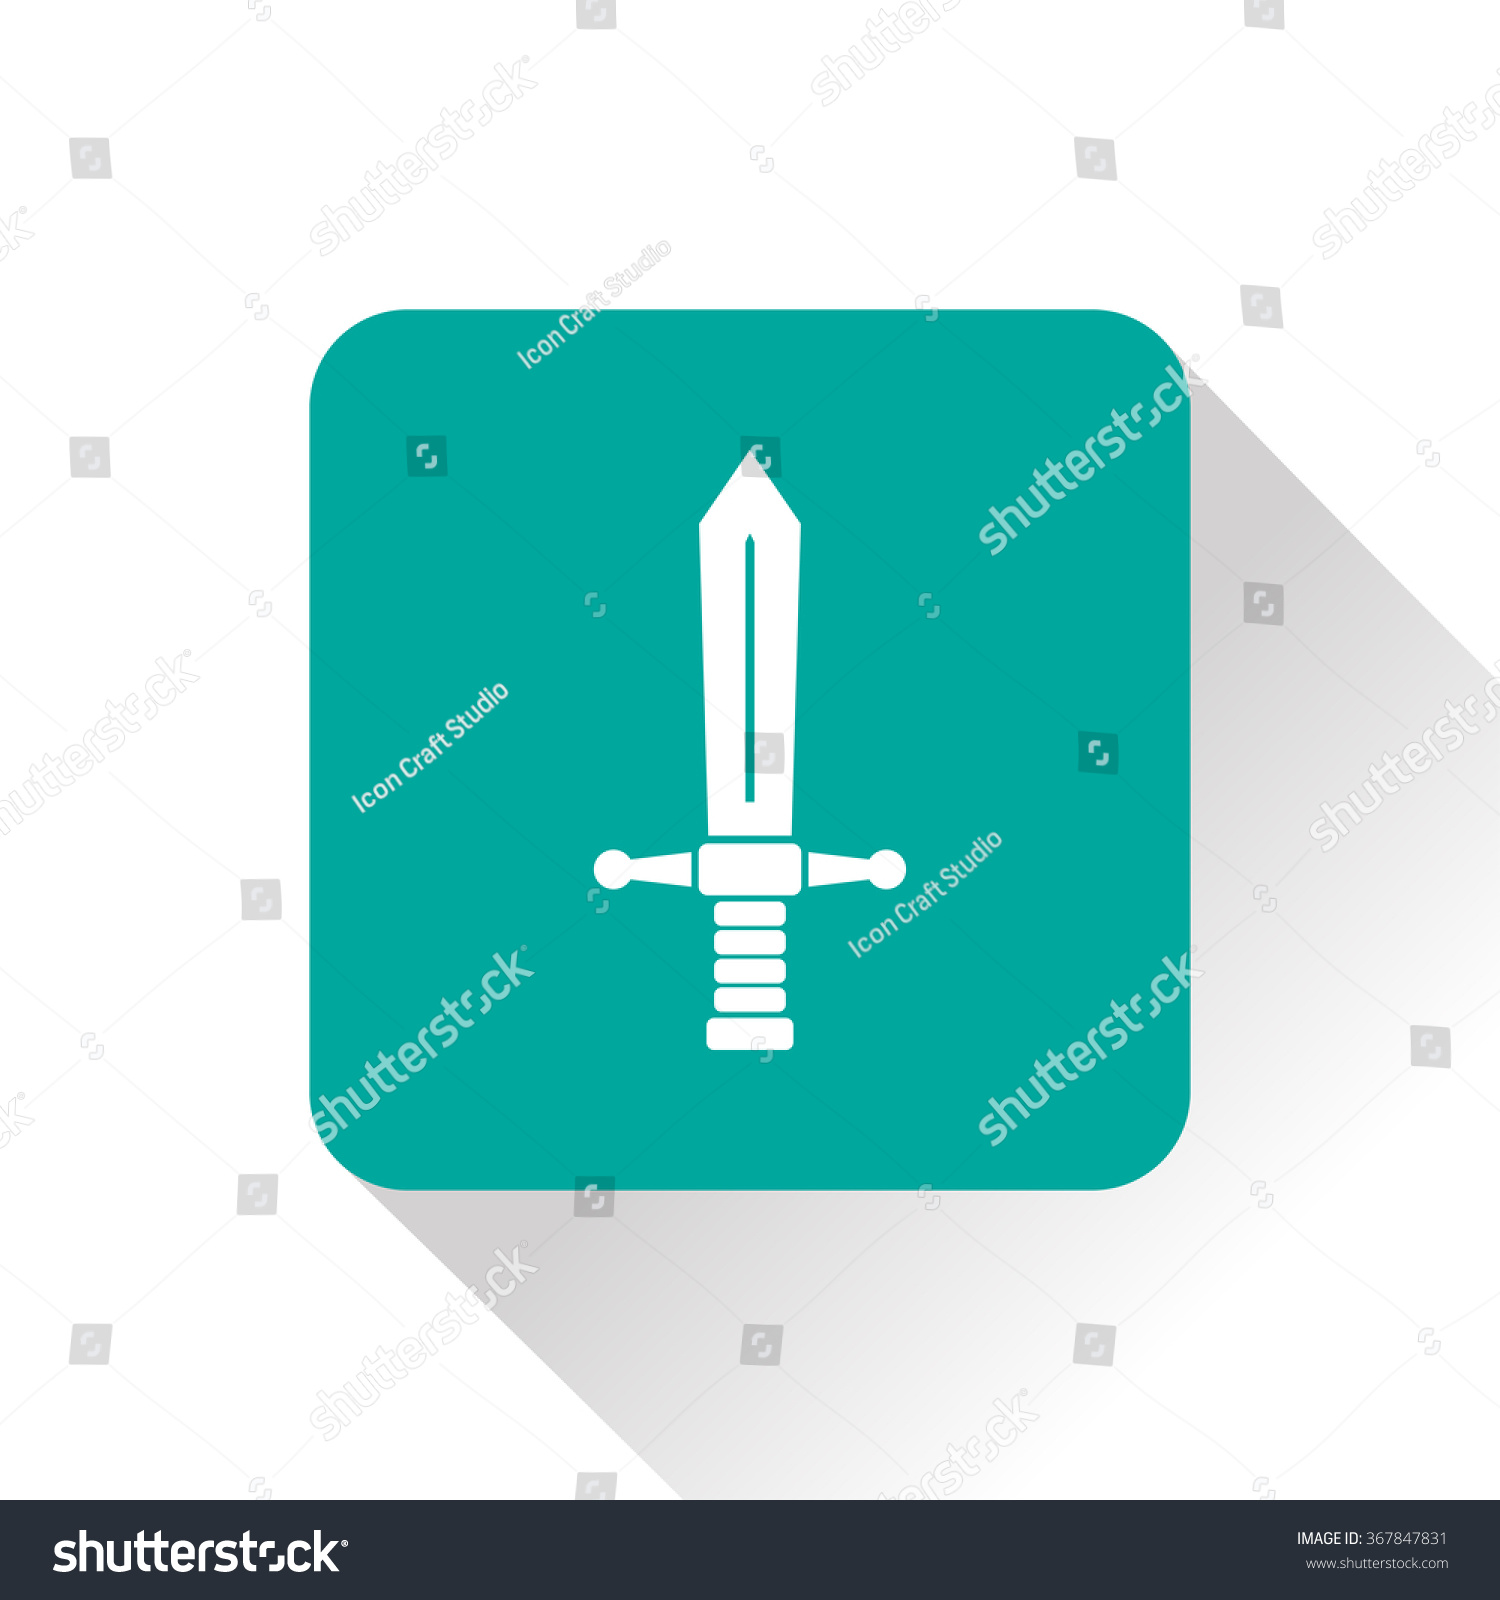 Medieval Sword Vector Icon Stock Vector 367847831 - Shutterstock